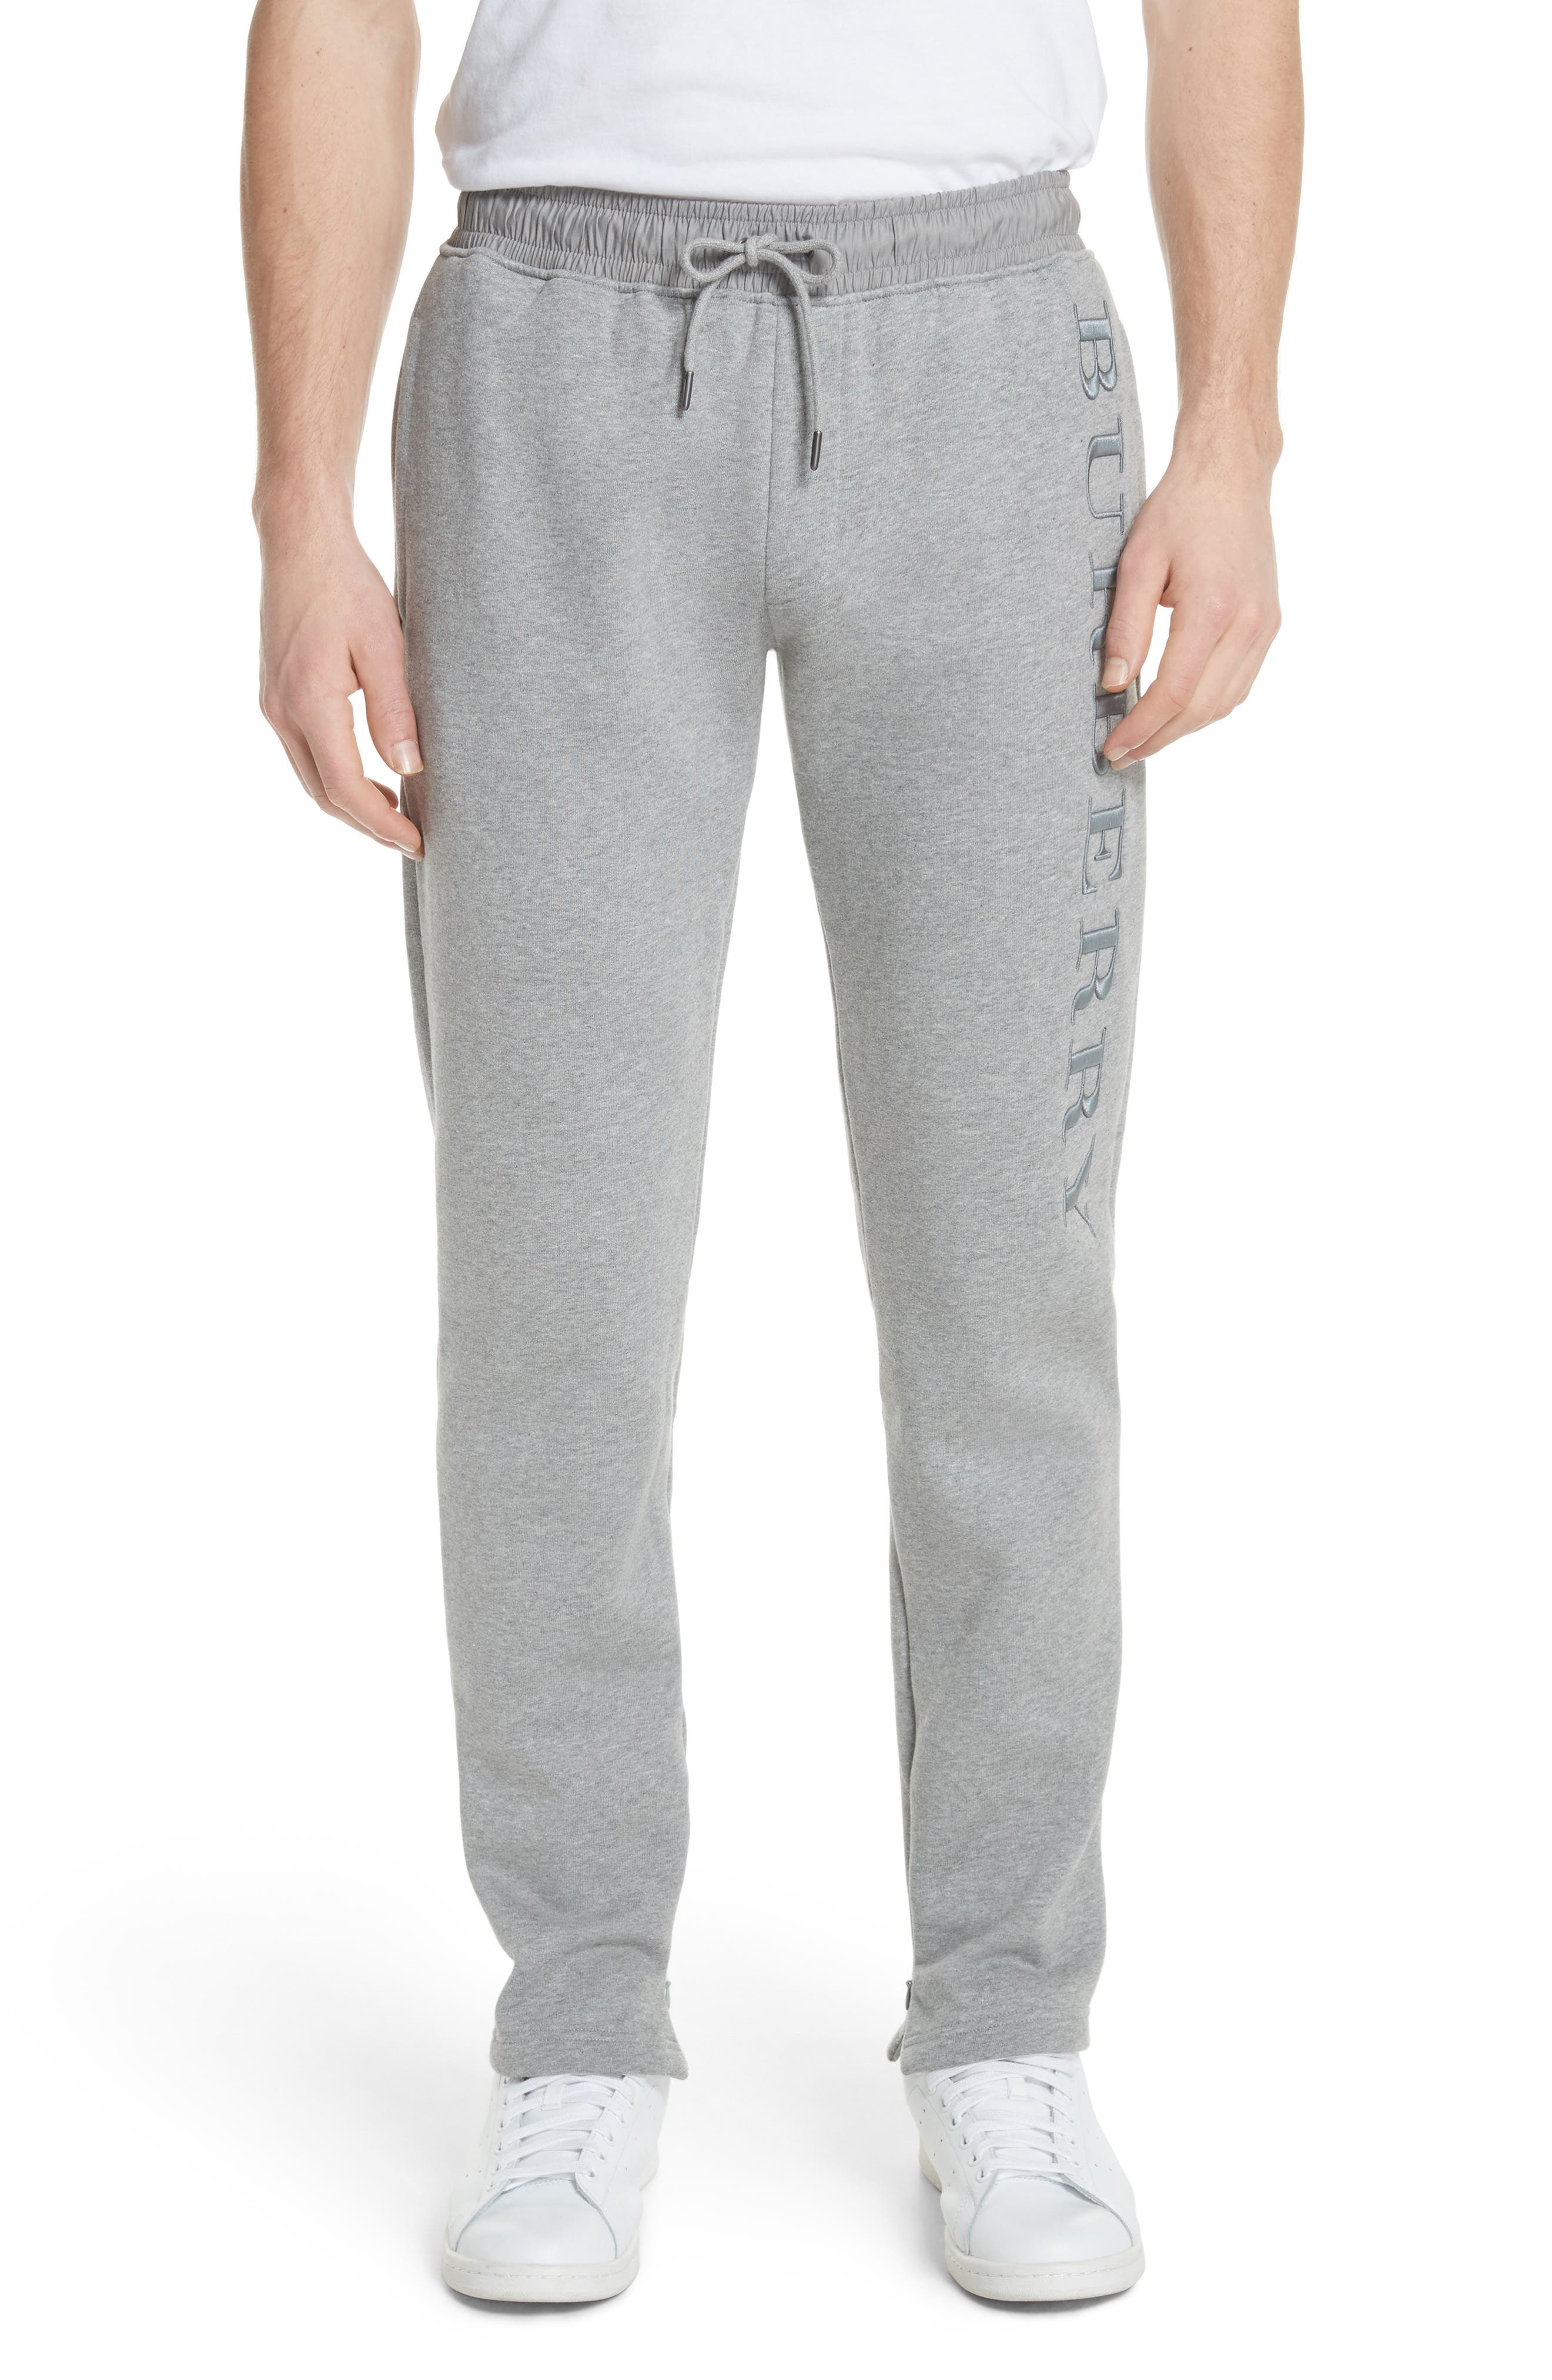 Burberry Nickford Lounge Pants